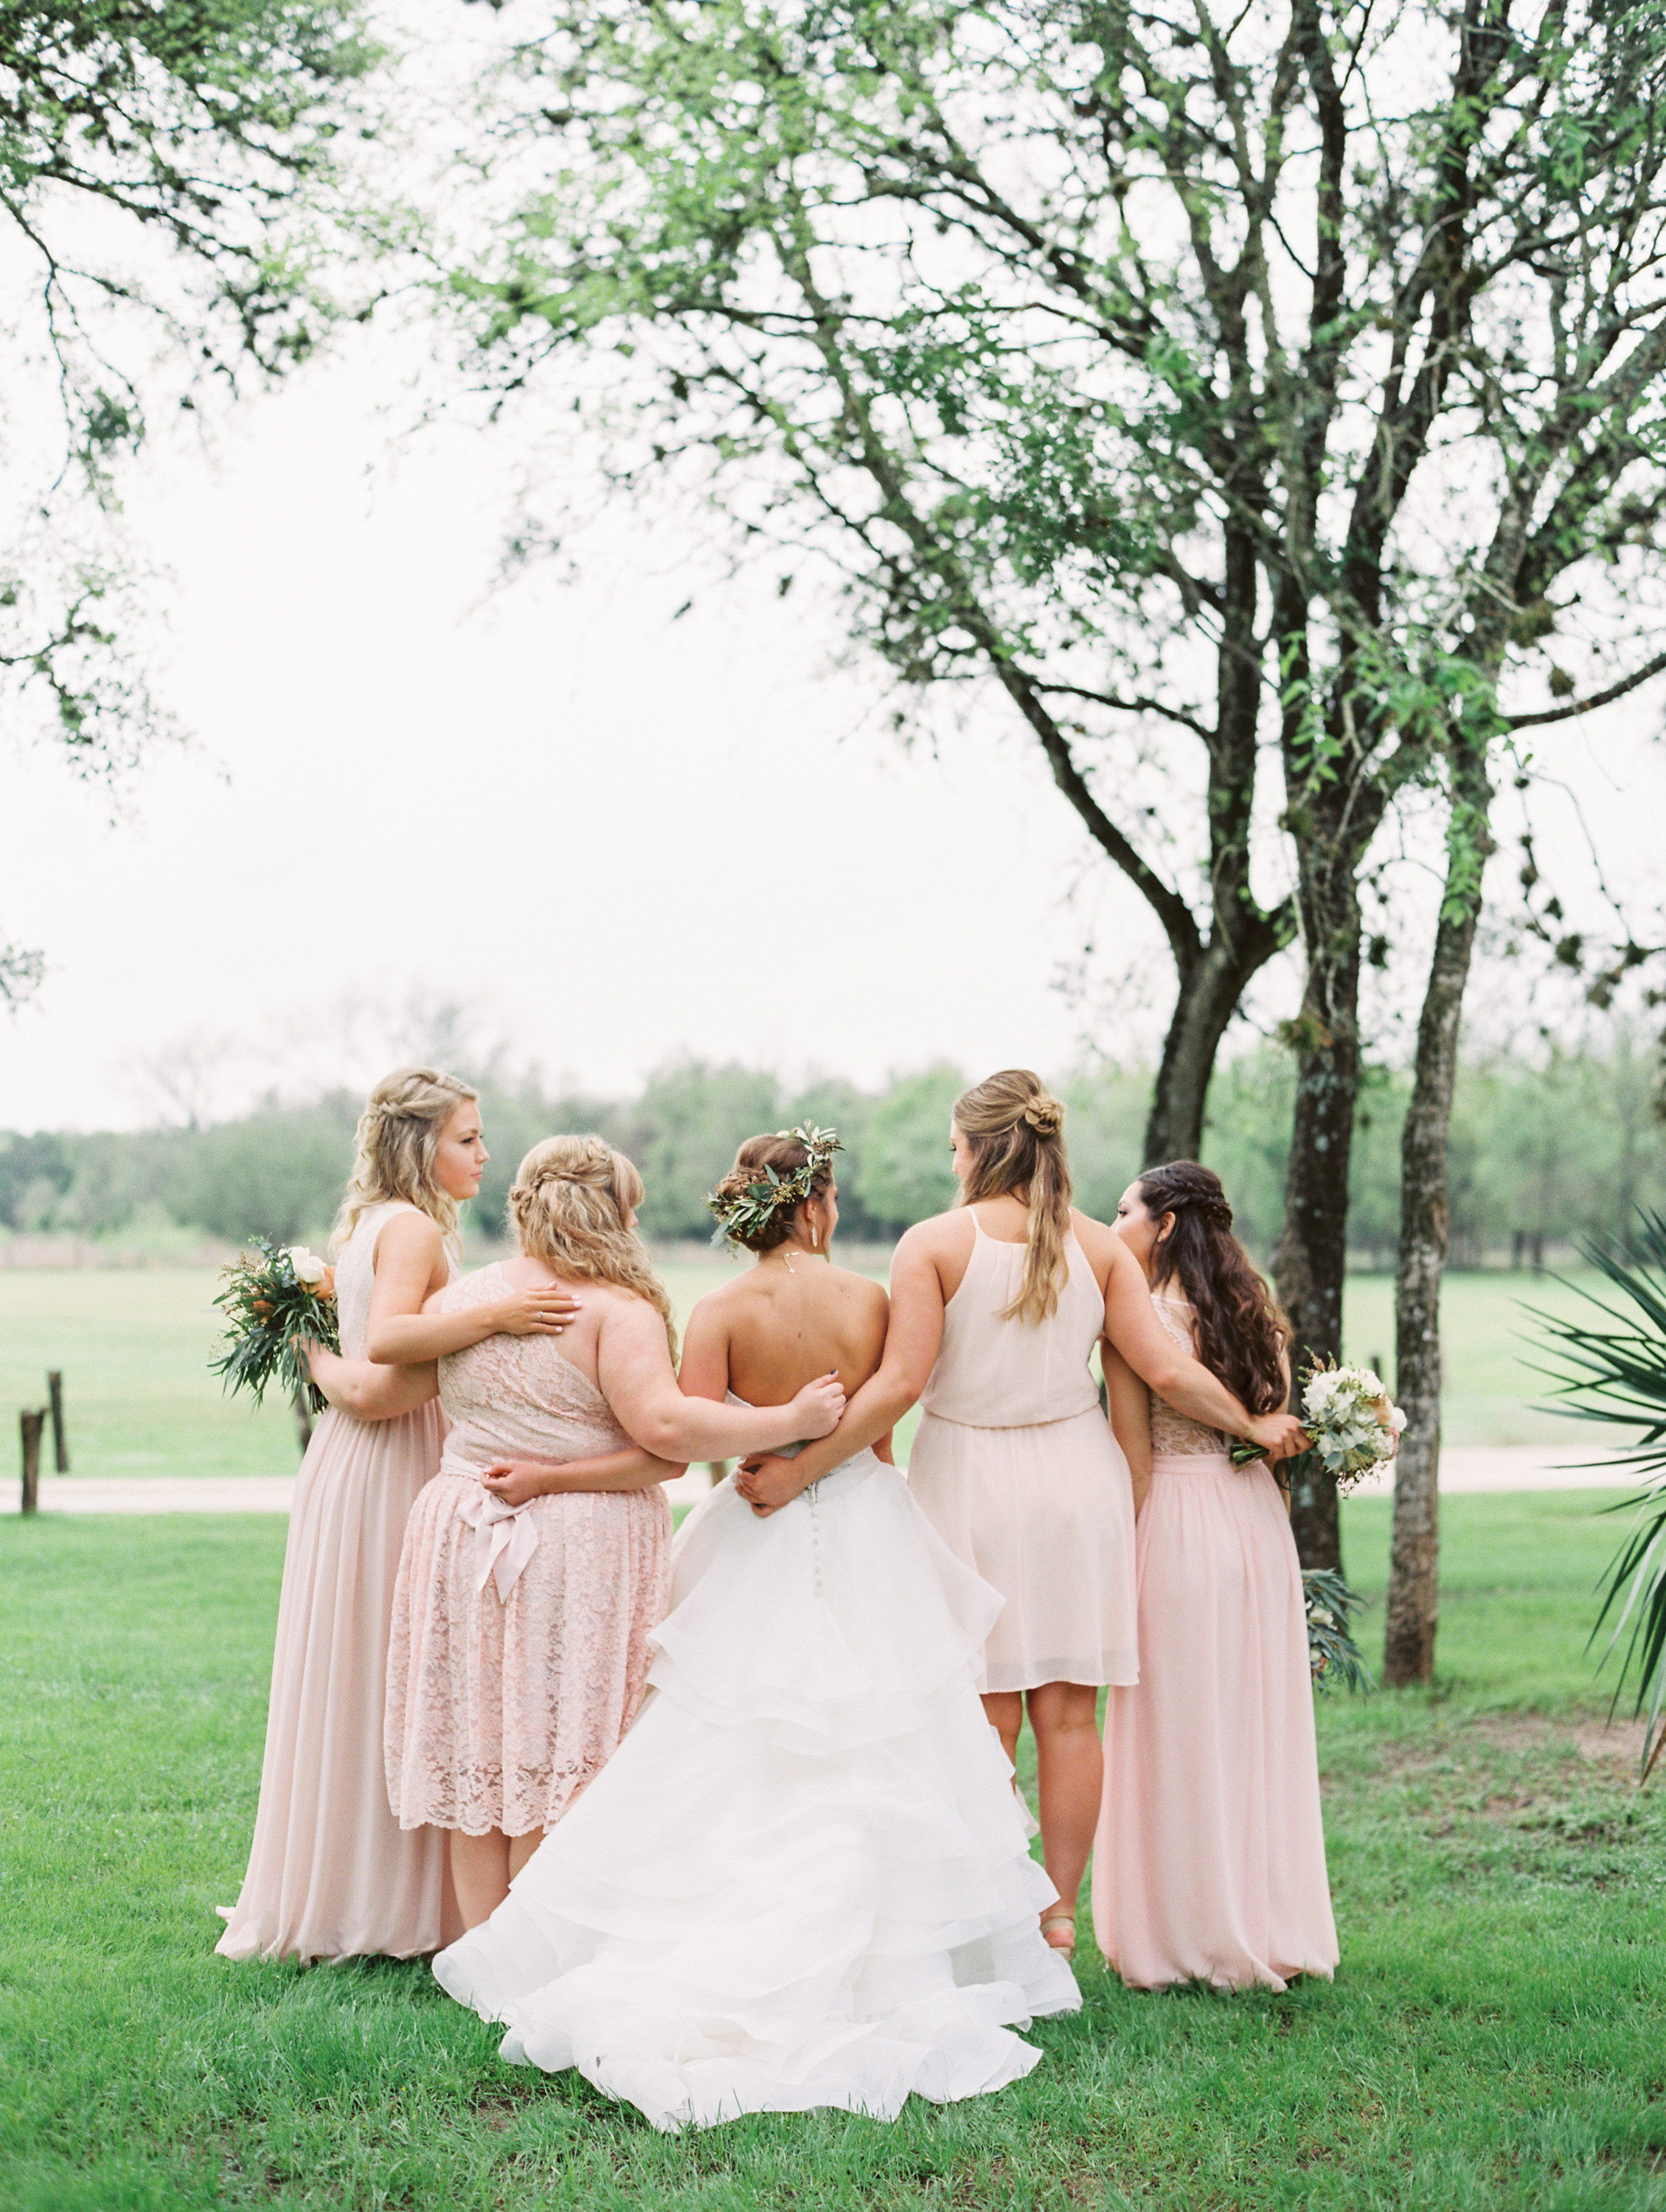 Hill Country Spring Wedding at Red Bud Hall | Austin Wedding Photographer | Film Wedding Photographer | Britni Dean Photography | Rainy Day Wedding Inspiration | blush bridesmaids